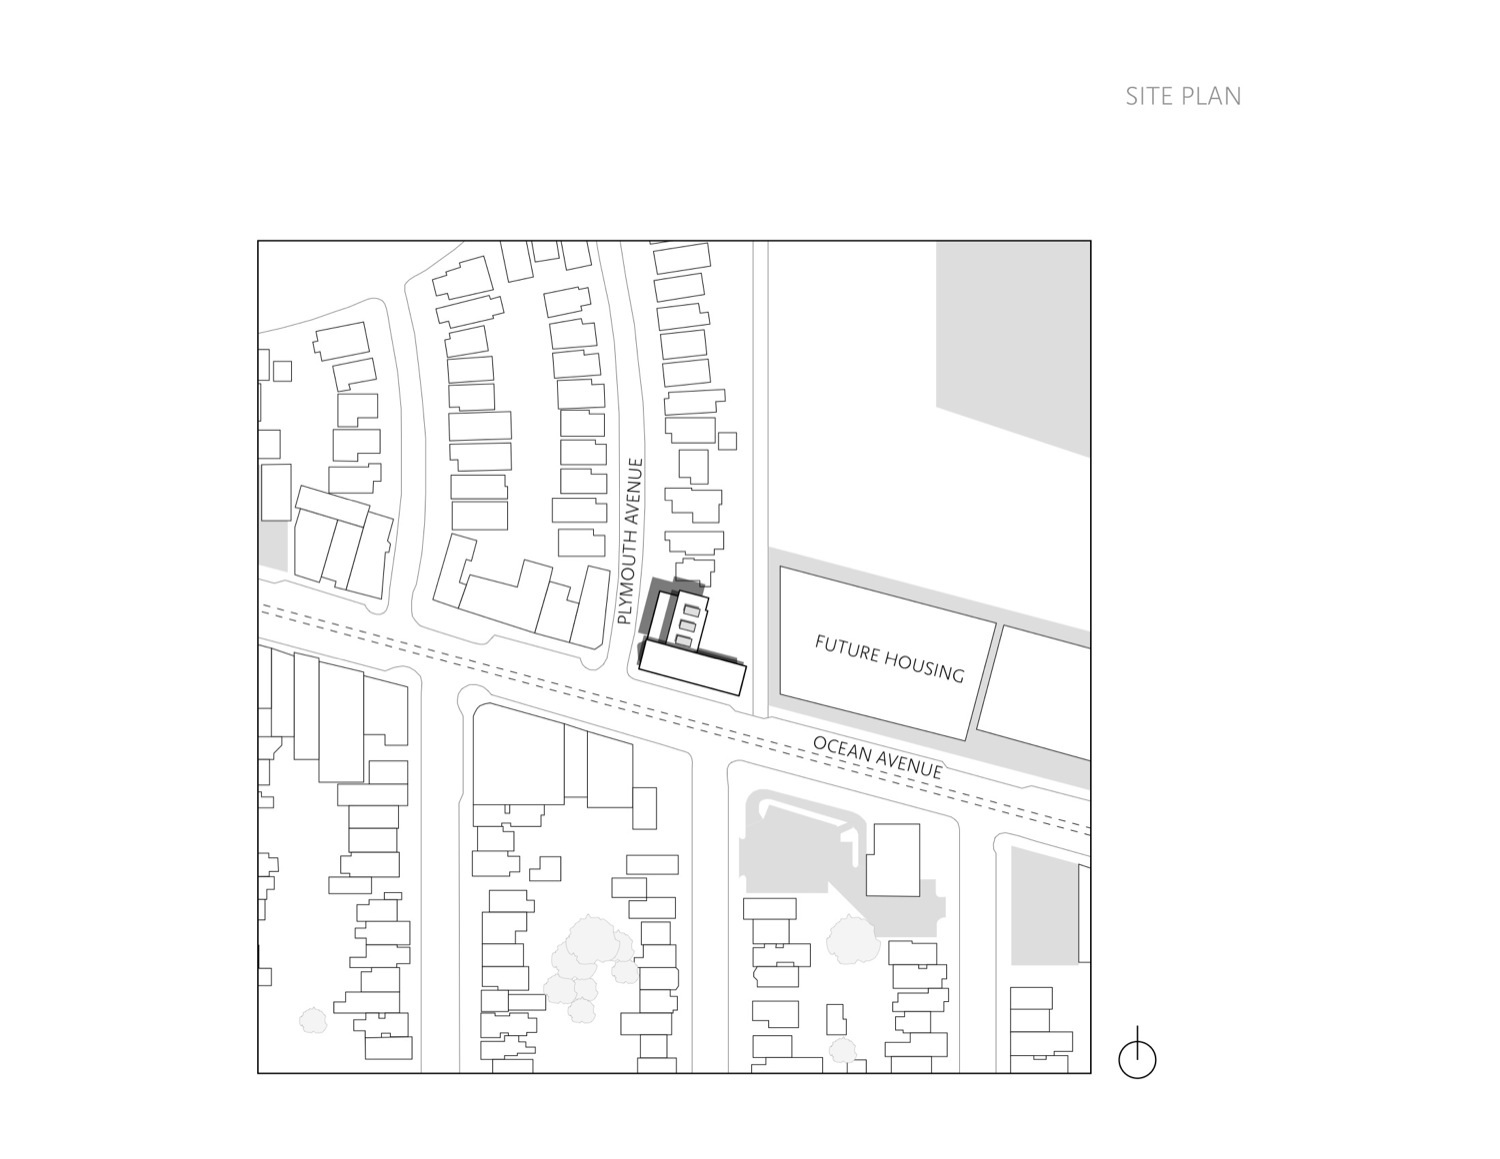 Site plan drawing © courtesy of fougeron architecture